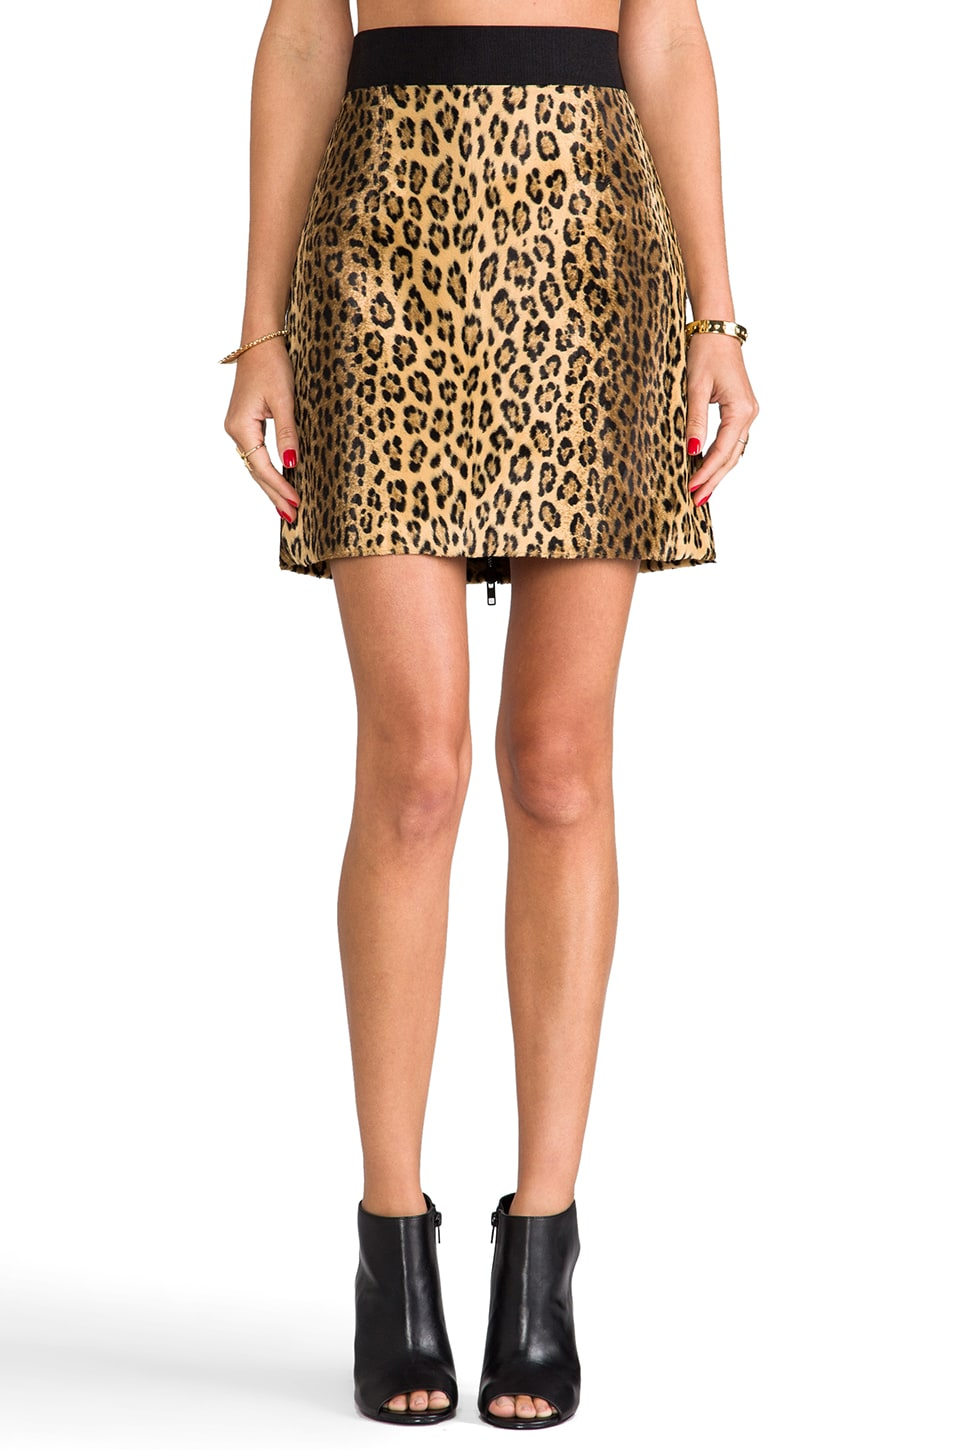 MILLY Cheetah Faux Fur Mini Pencil Skirt in Multi